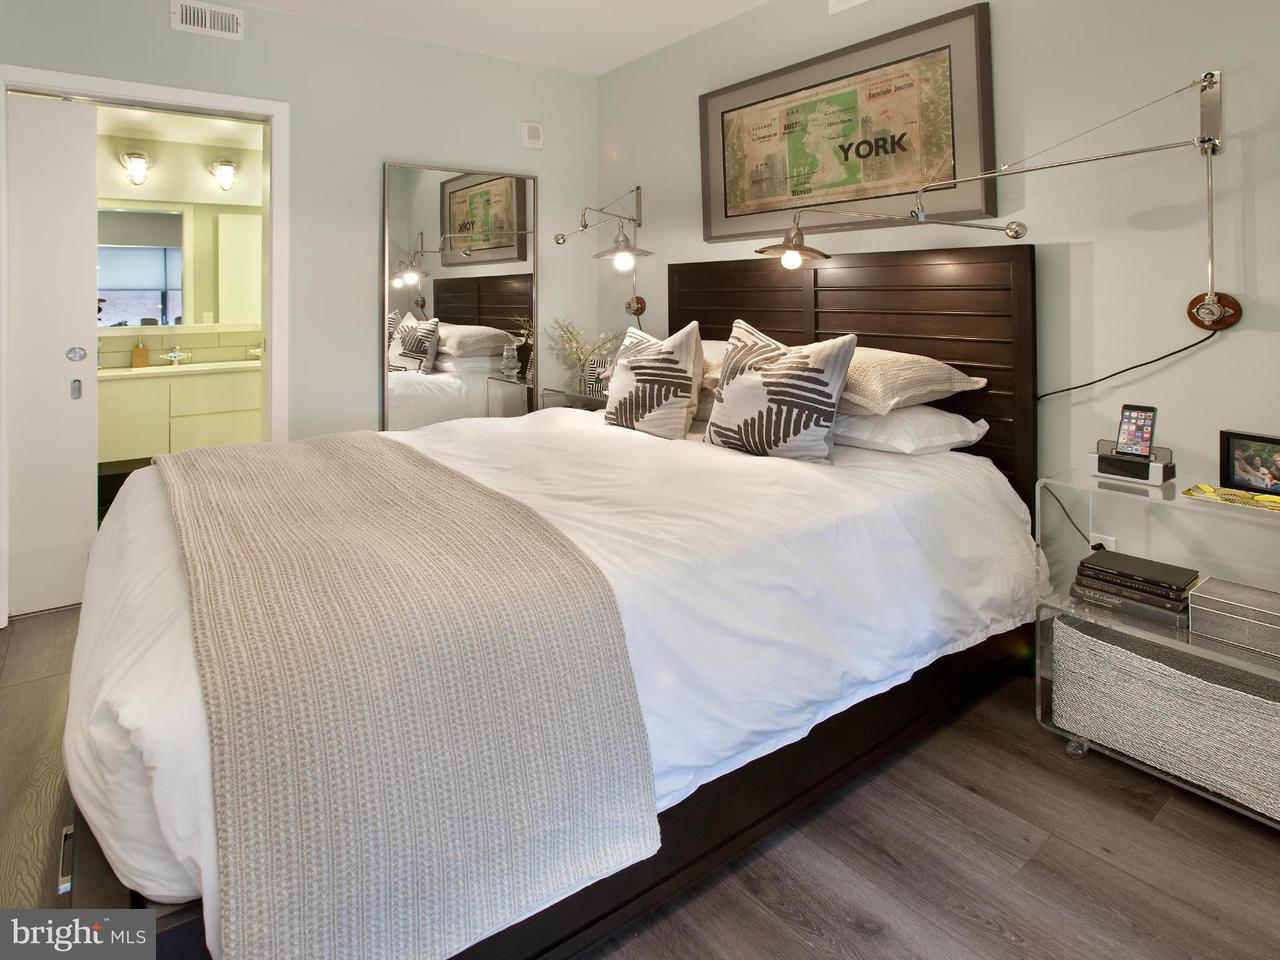 Additional photo for property listing at 2112 8th St NW #328  Washington, District Of Columbia 20001 United States